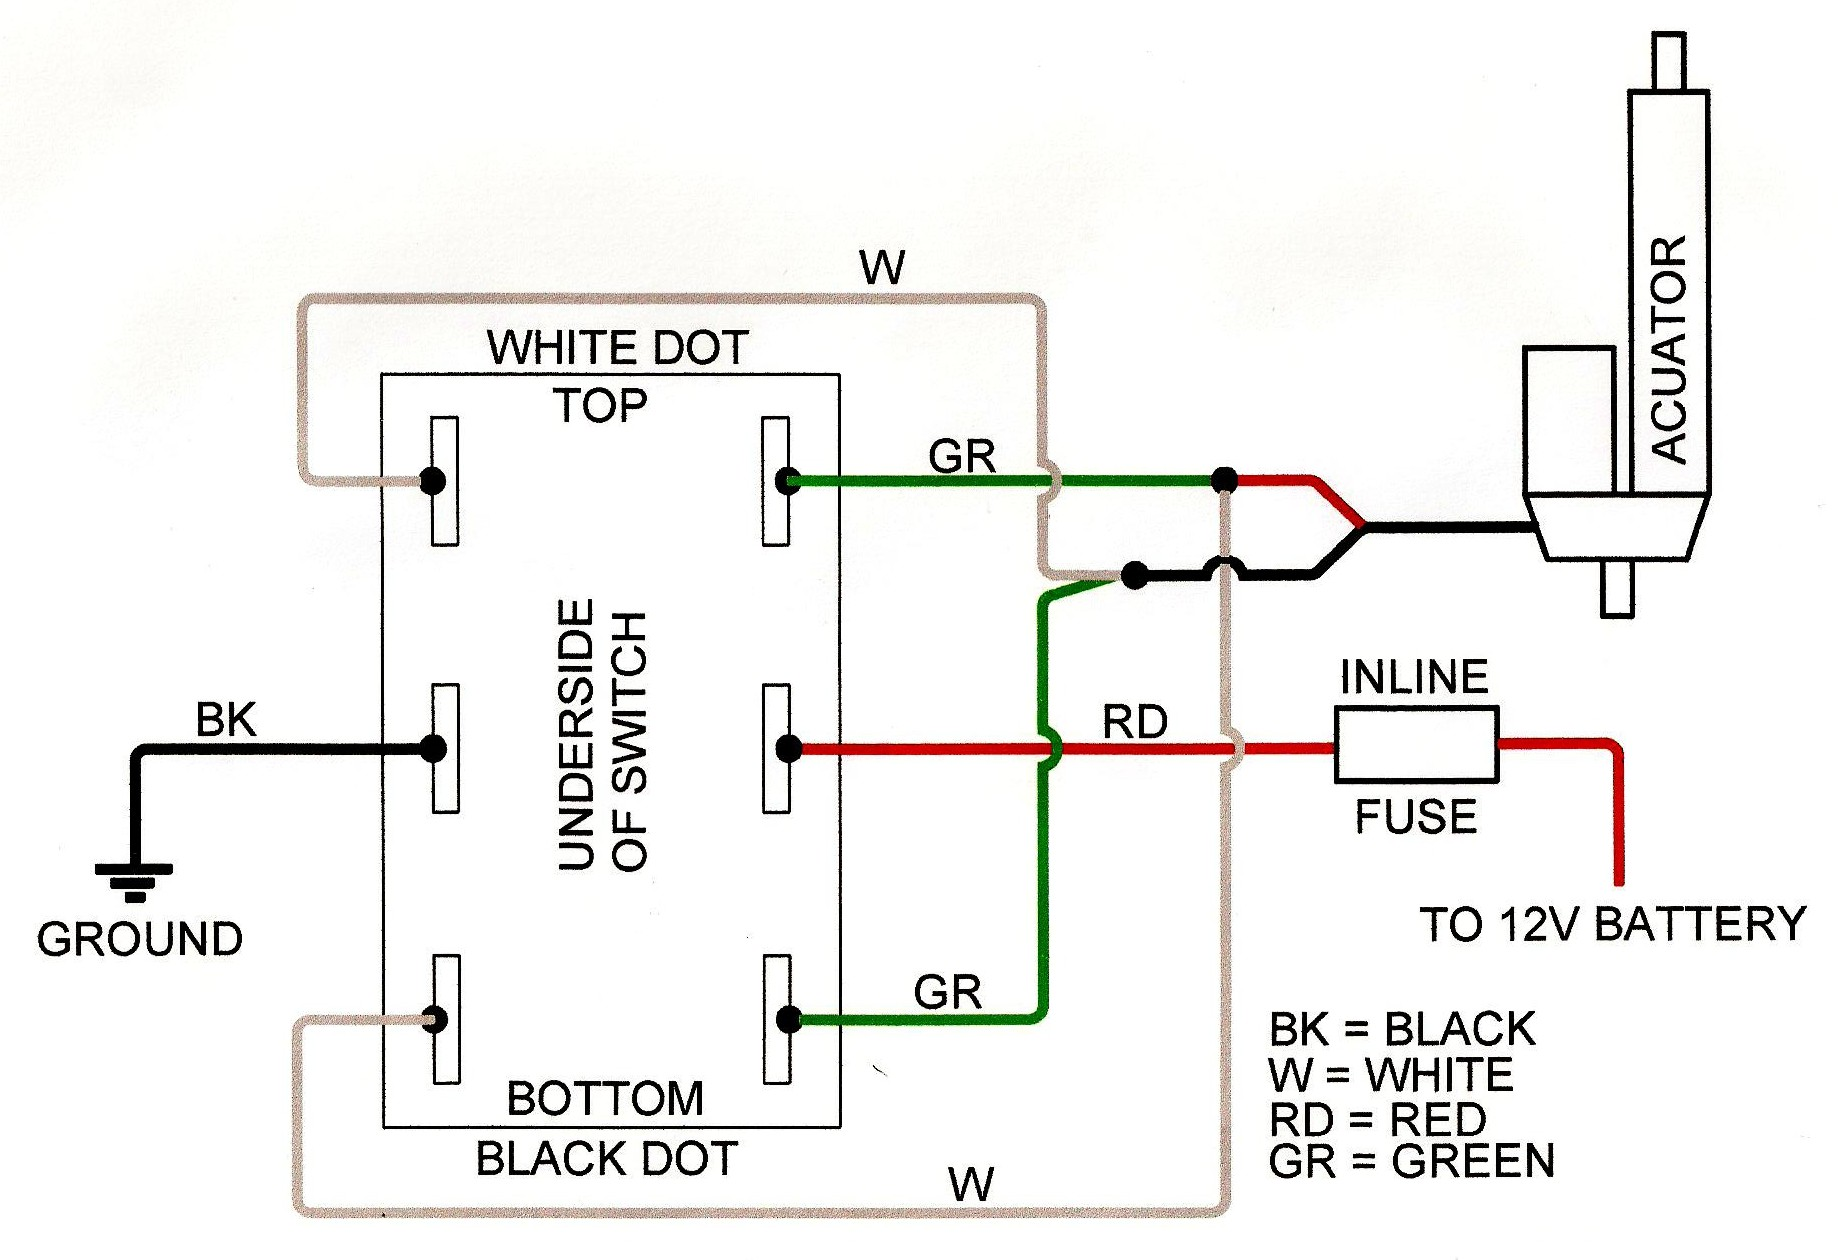 hight resolution of ford ranger wiring diagram ford 3g alternator wiring diagram 1965 ford